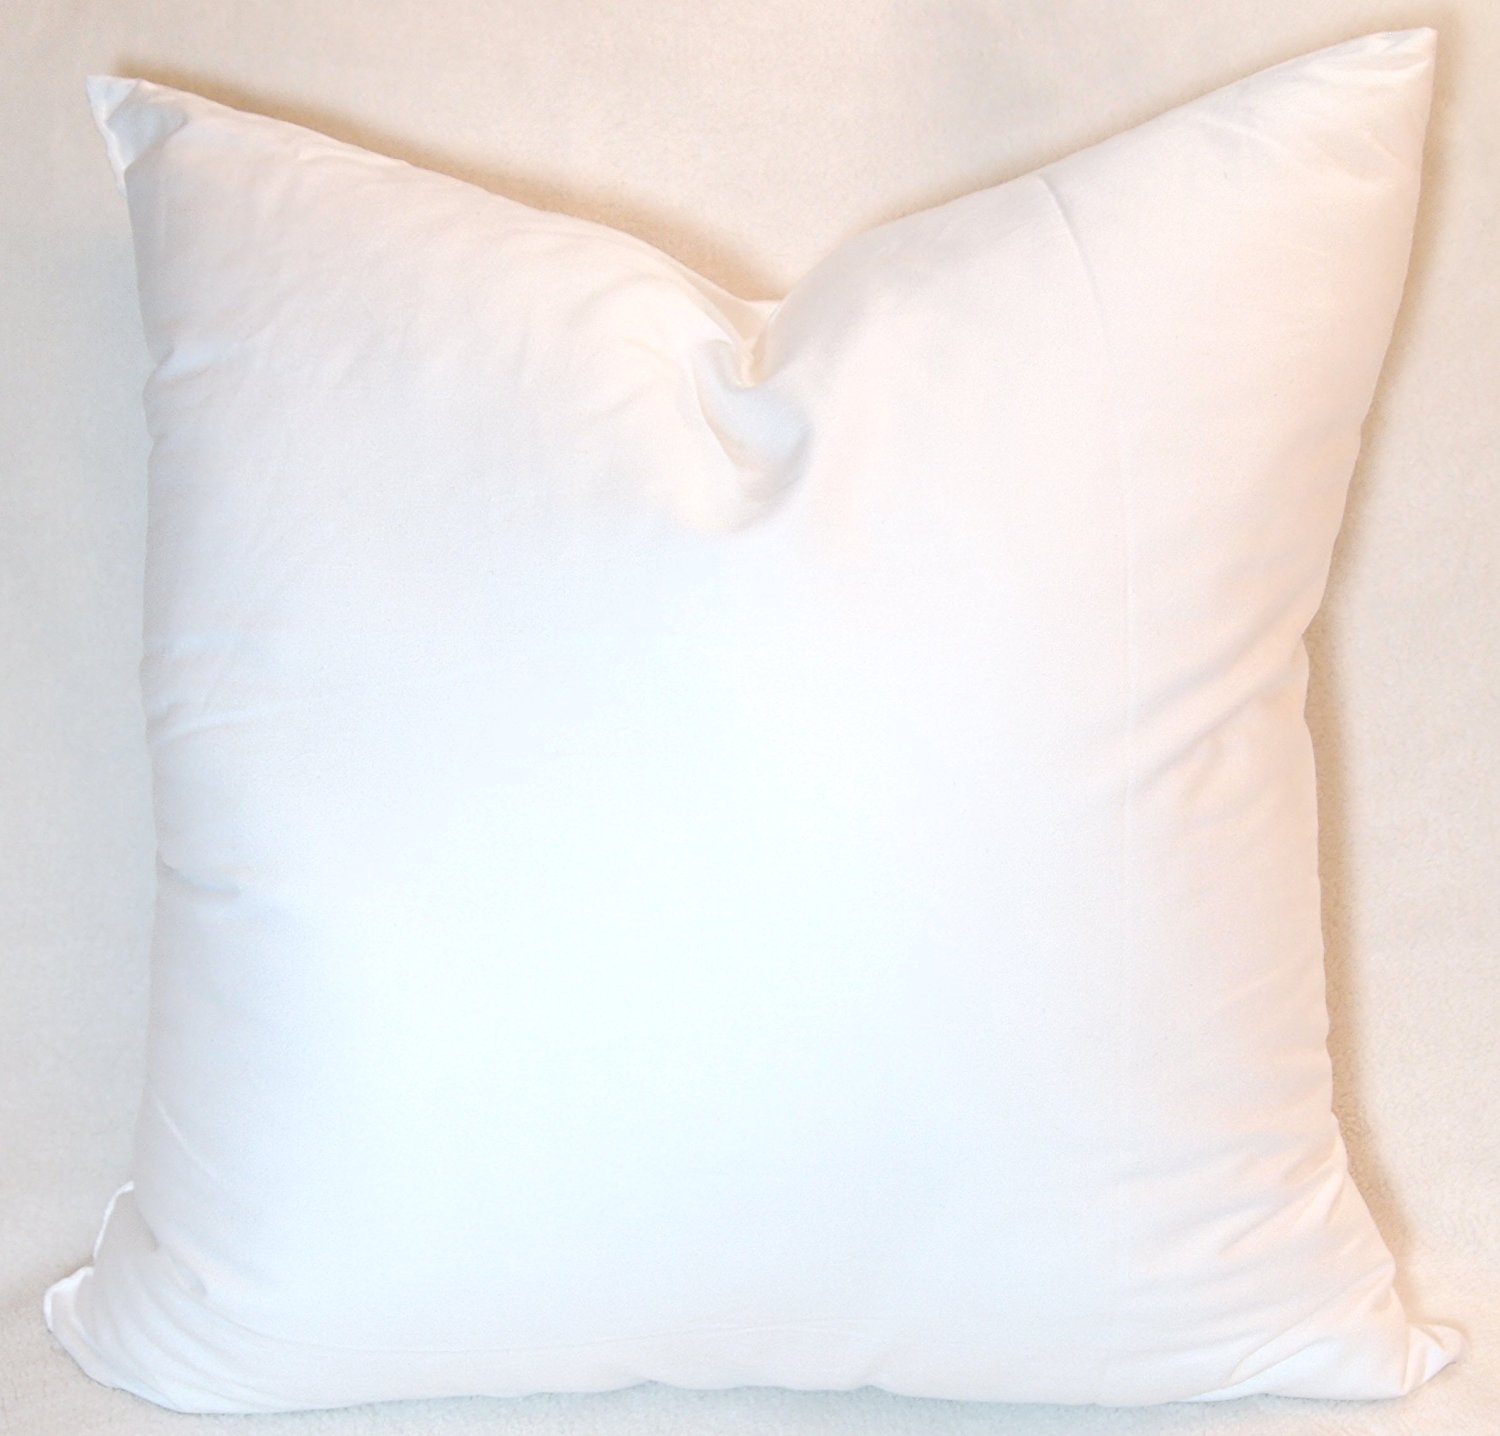 Pillowflex Synthetic Down Pillow Form Insert 22 By 22 Inch New